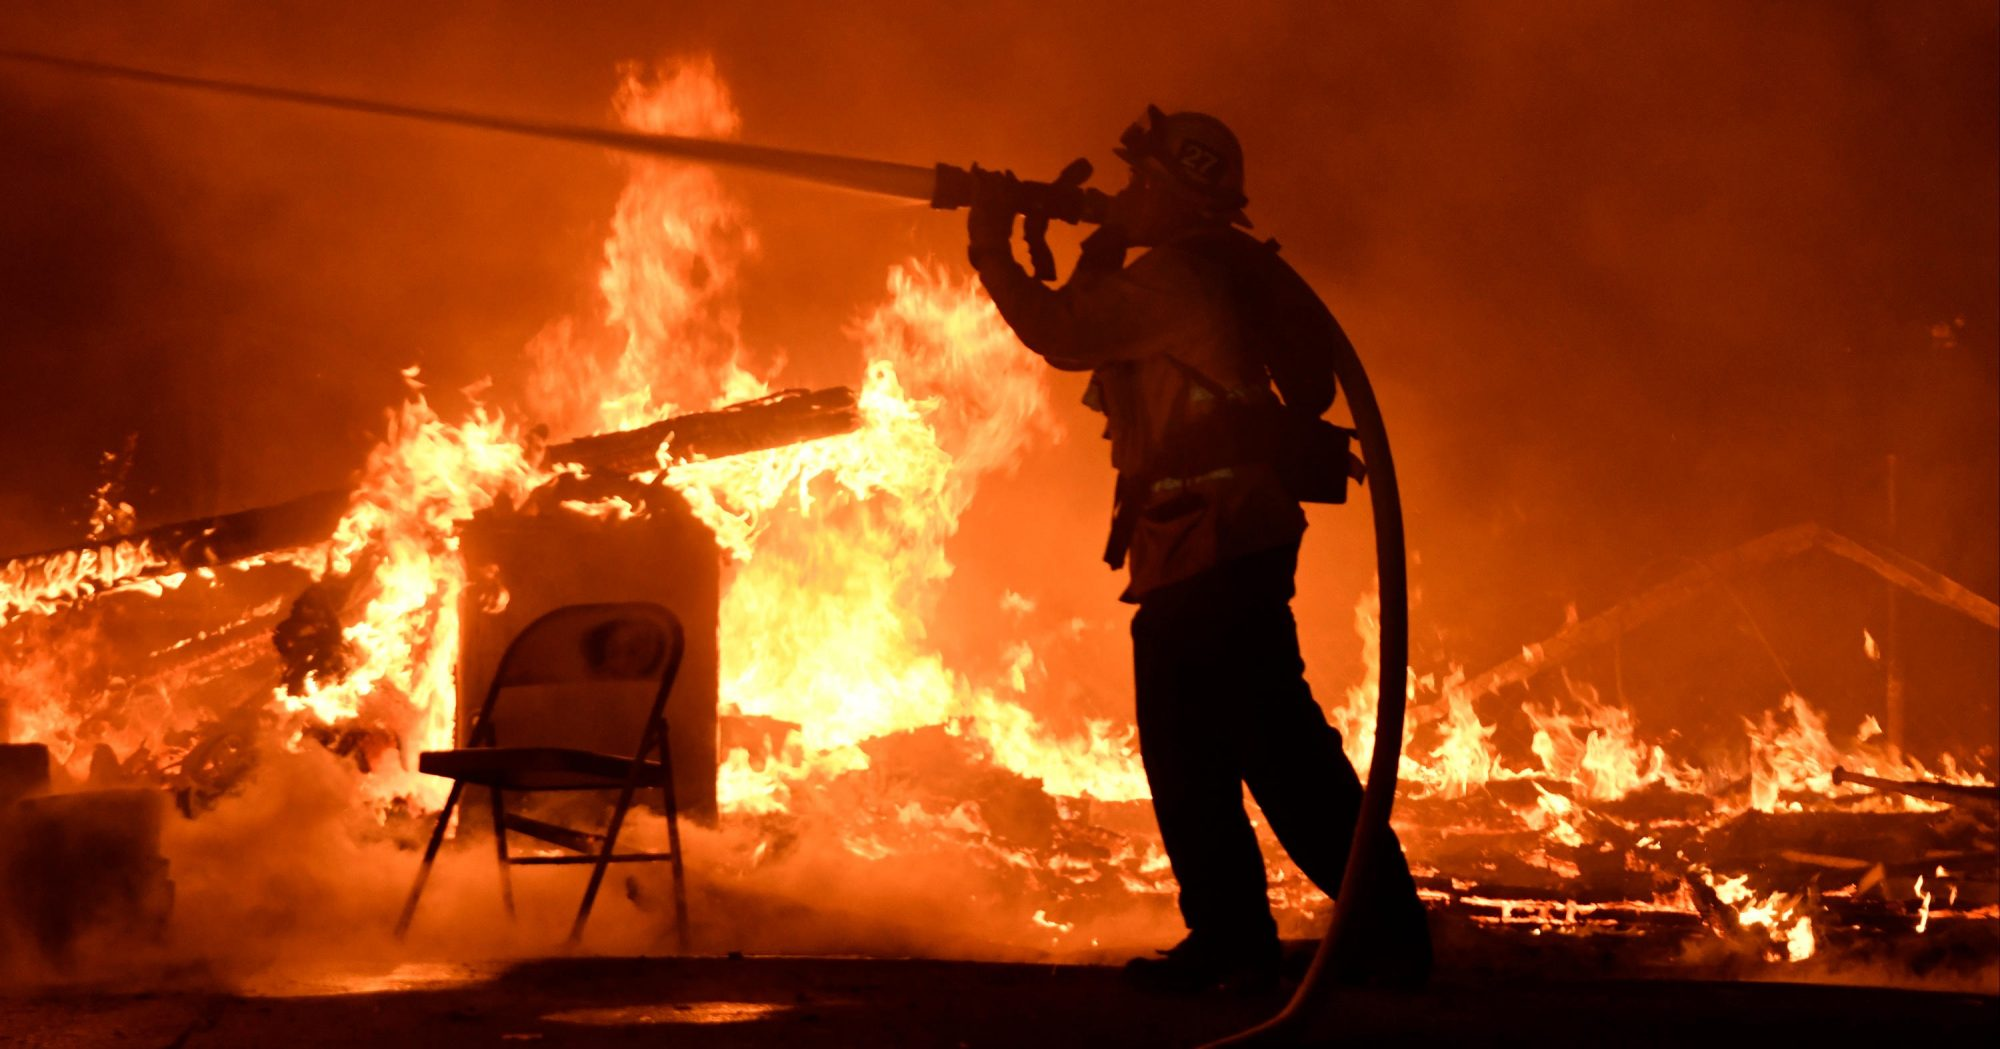 SANTA PAULA, Calif. Firefighters battle a santa ana wind-driven brush fire called the Thomas fire that exploded to 31, 00 acres with zero percent containment overnight Monday into early Tuesday morning, according to Ventura County fire officials. December